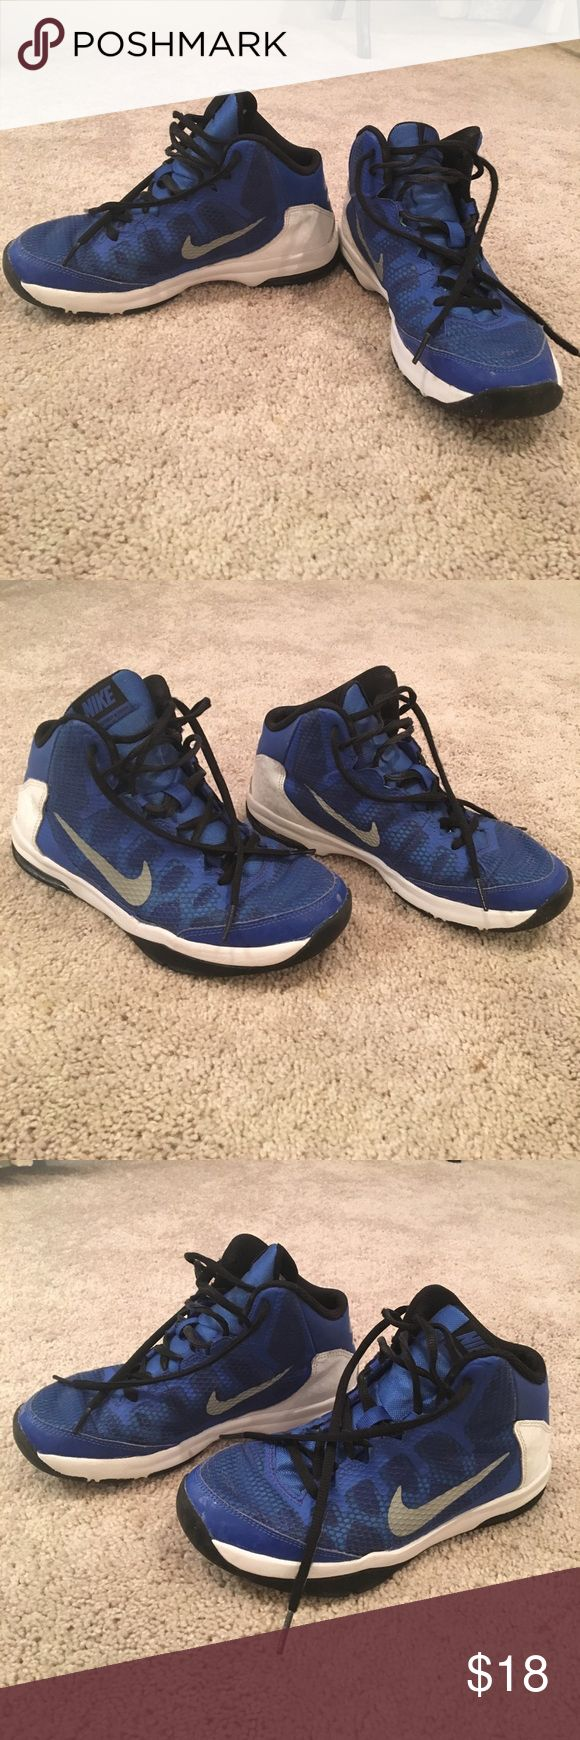 Nike basketball shoes 4y blue and white. Nike basketball shoes 4y blue and white. Used one basketball season. In good and clean shape. One scuff on the right front shoe. Nike Shoes Sneakers